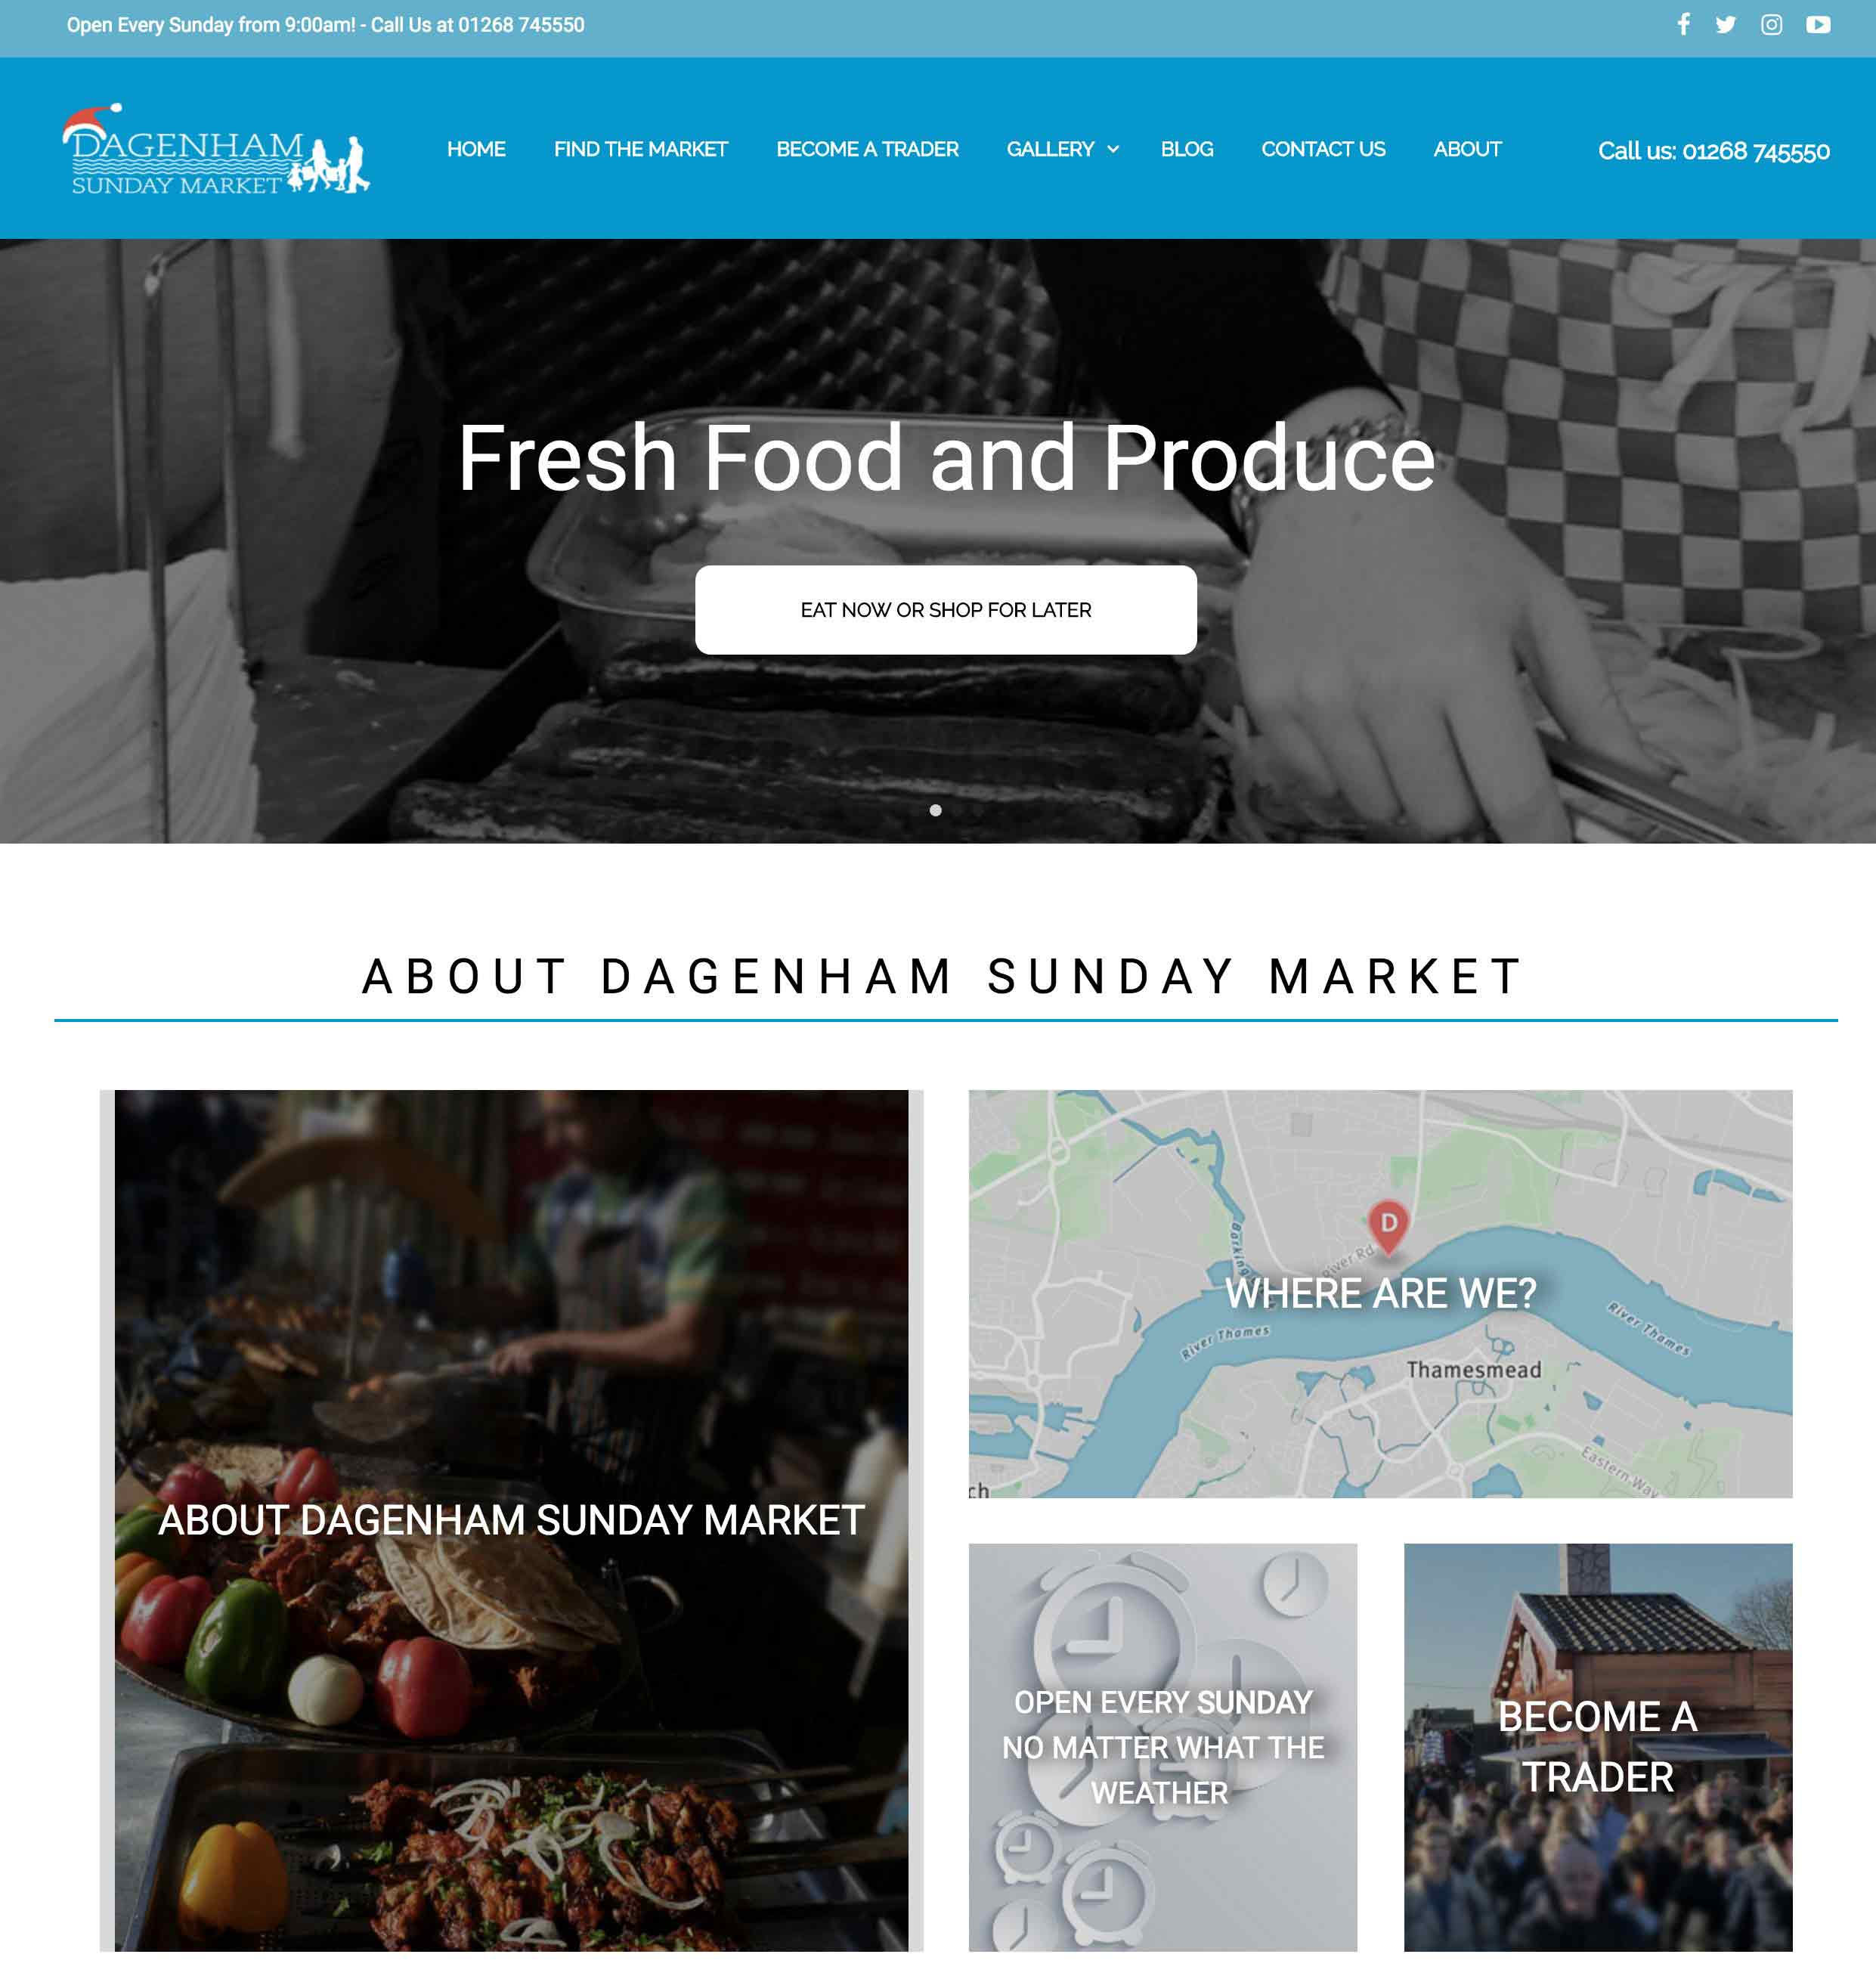 Dagenham Sunday Market Project Image